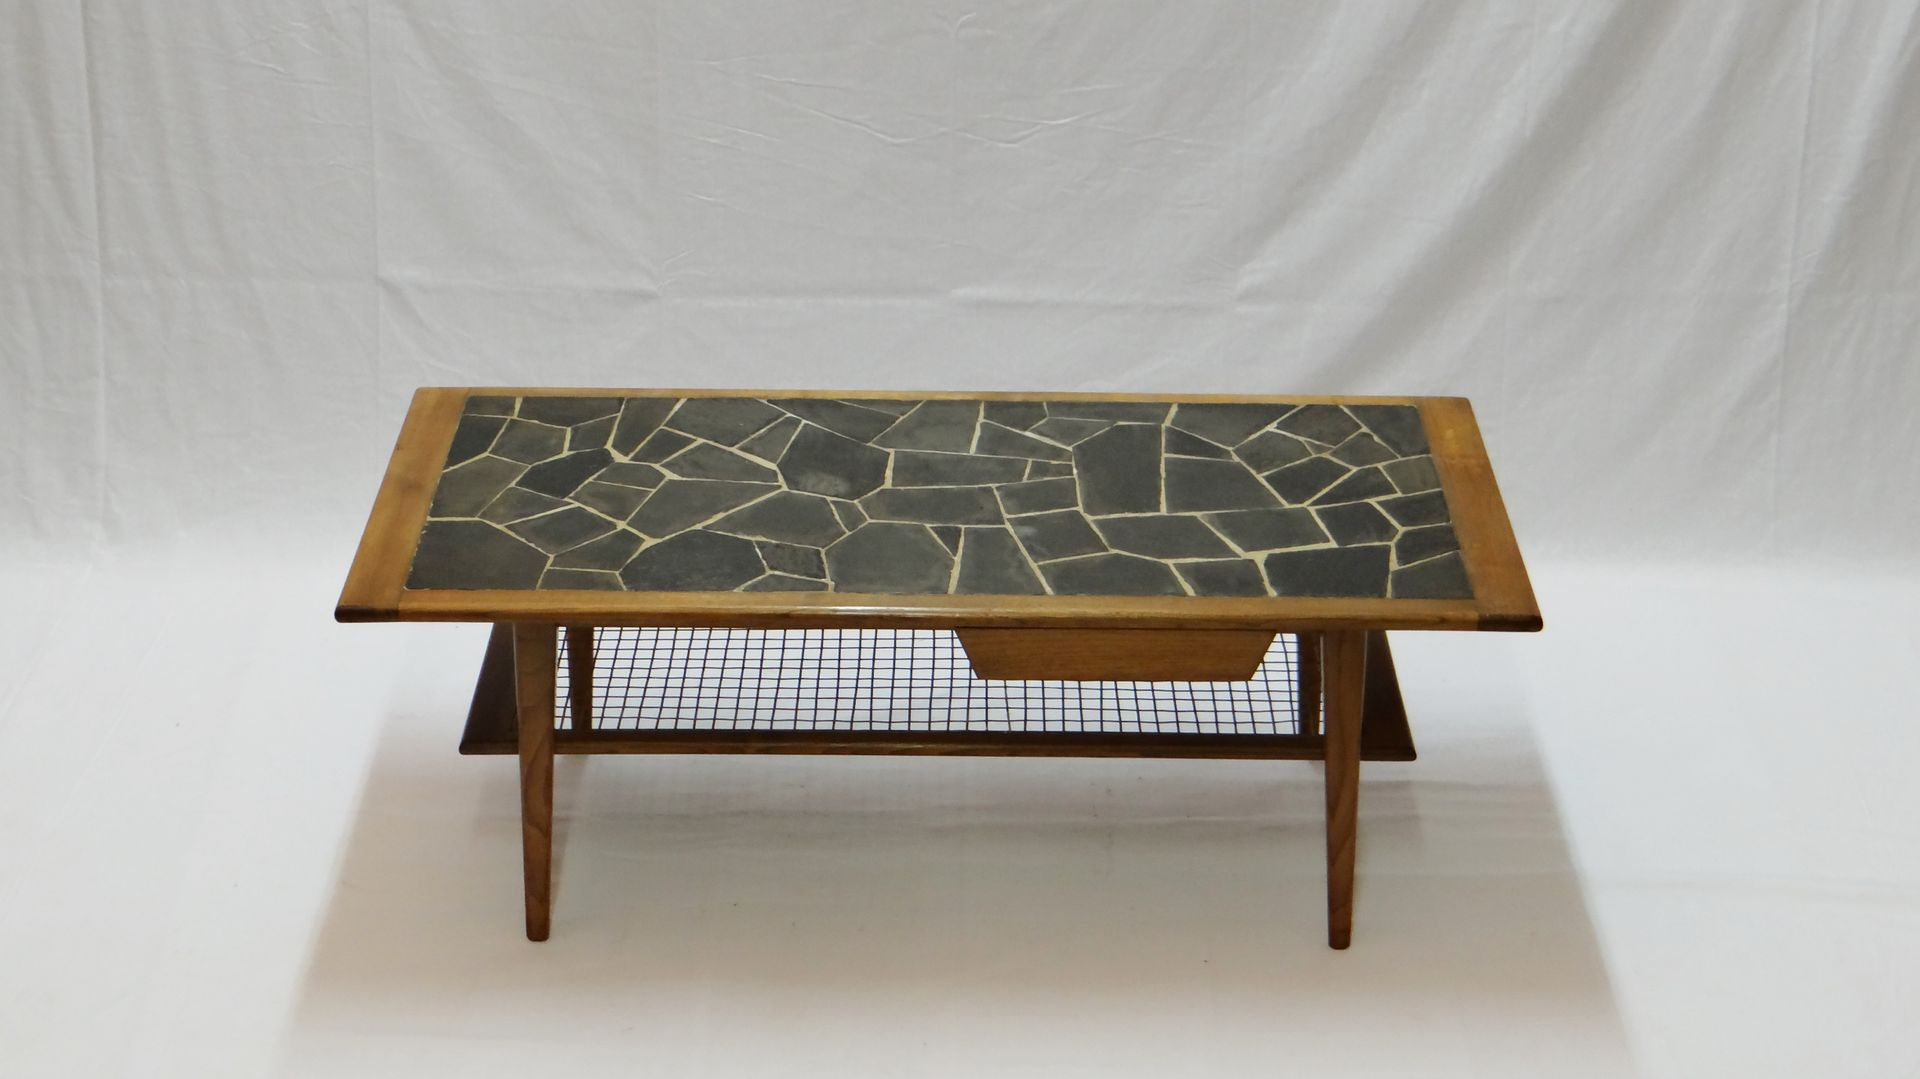 vintage teak couchtisch mit schiefer mosaik 1960er bei. Black Bedroom Furniture Sets. Home Design Ideas